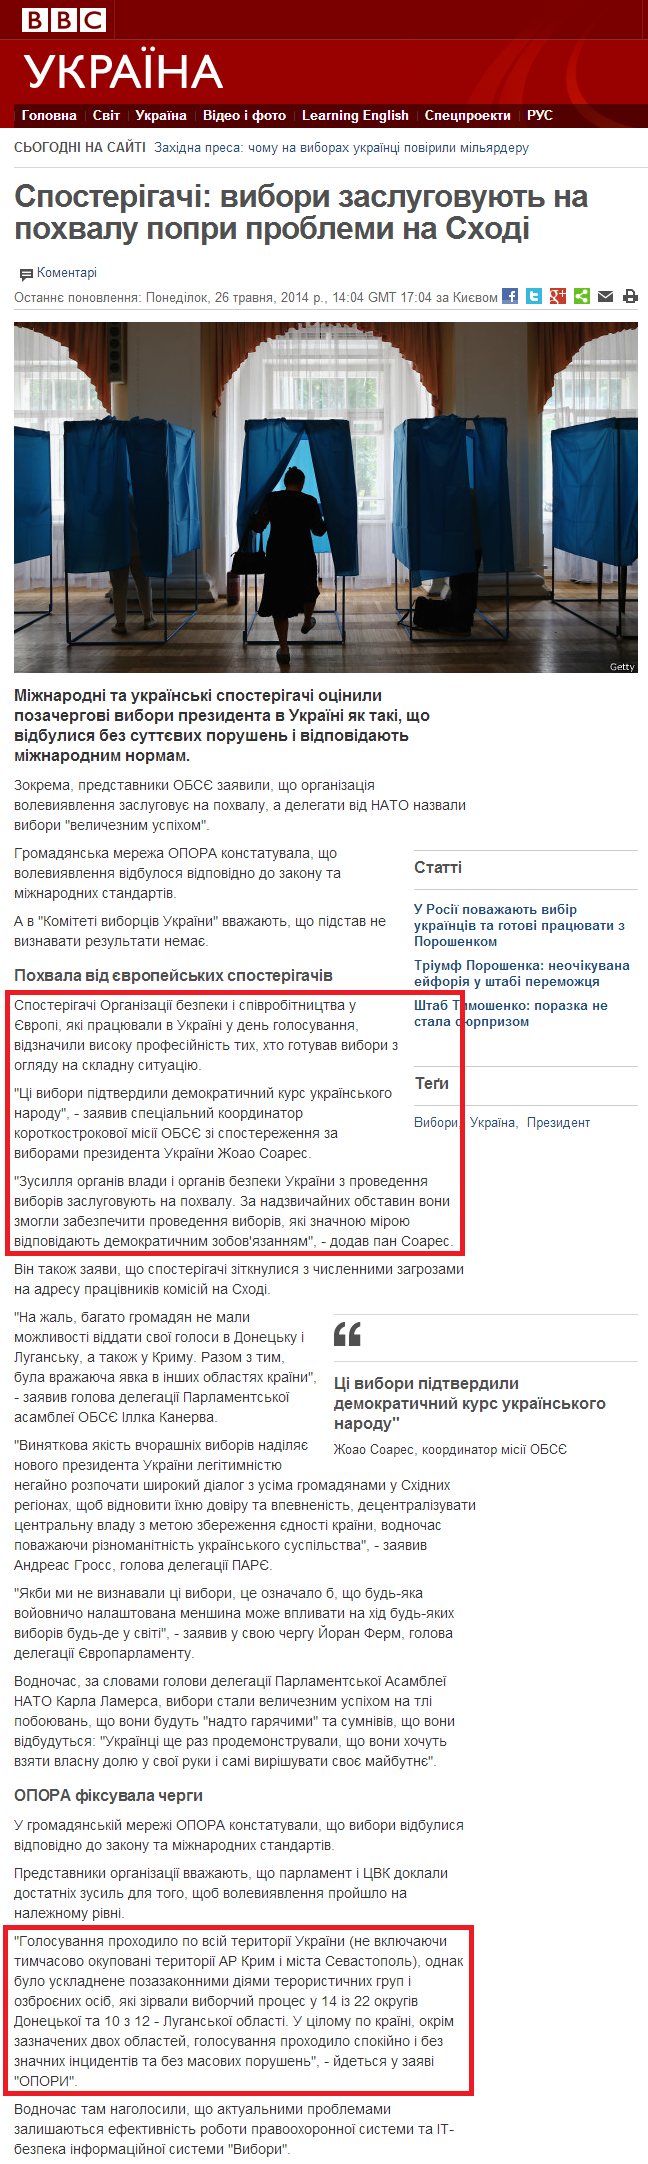 http://www.bbc.co.uk/ukrainian/politics/2014/05/140526_election_results_comments_rl.shtml